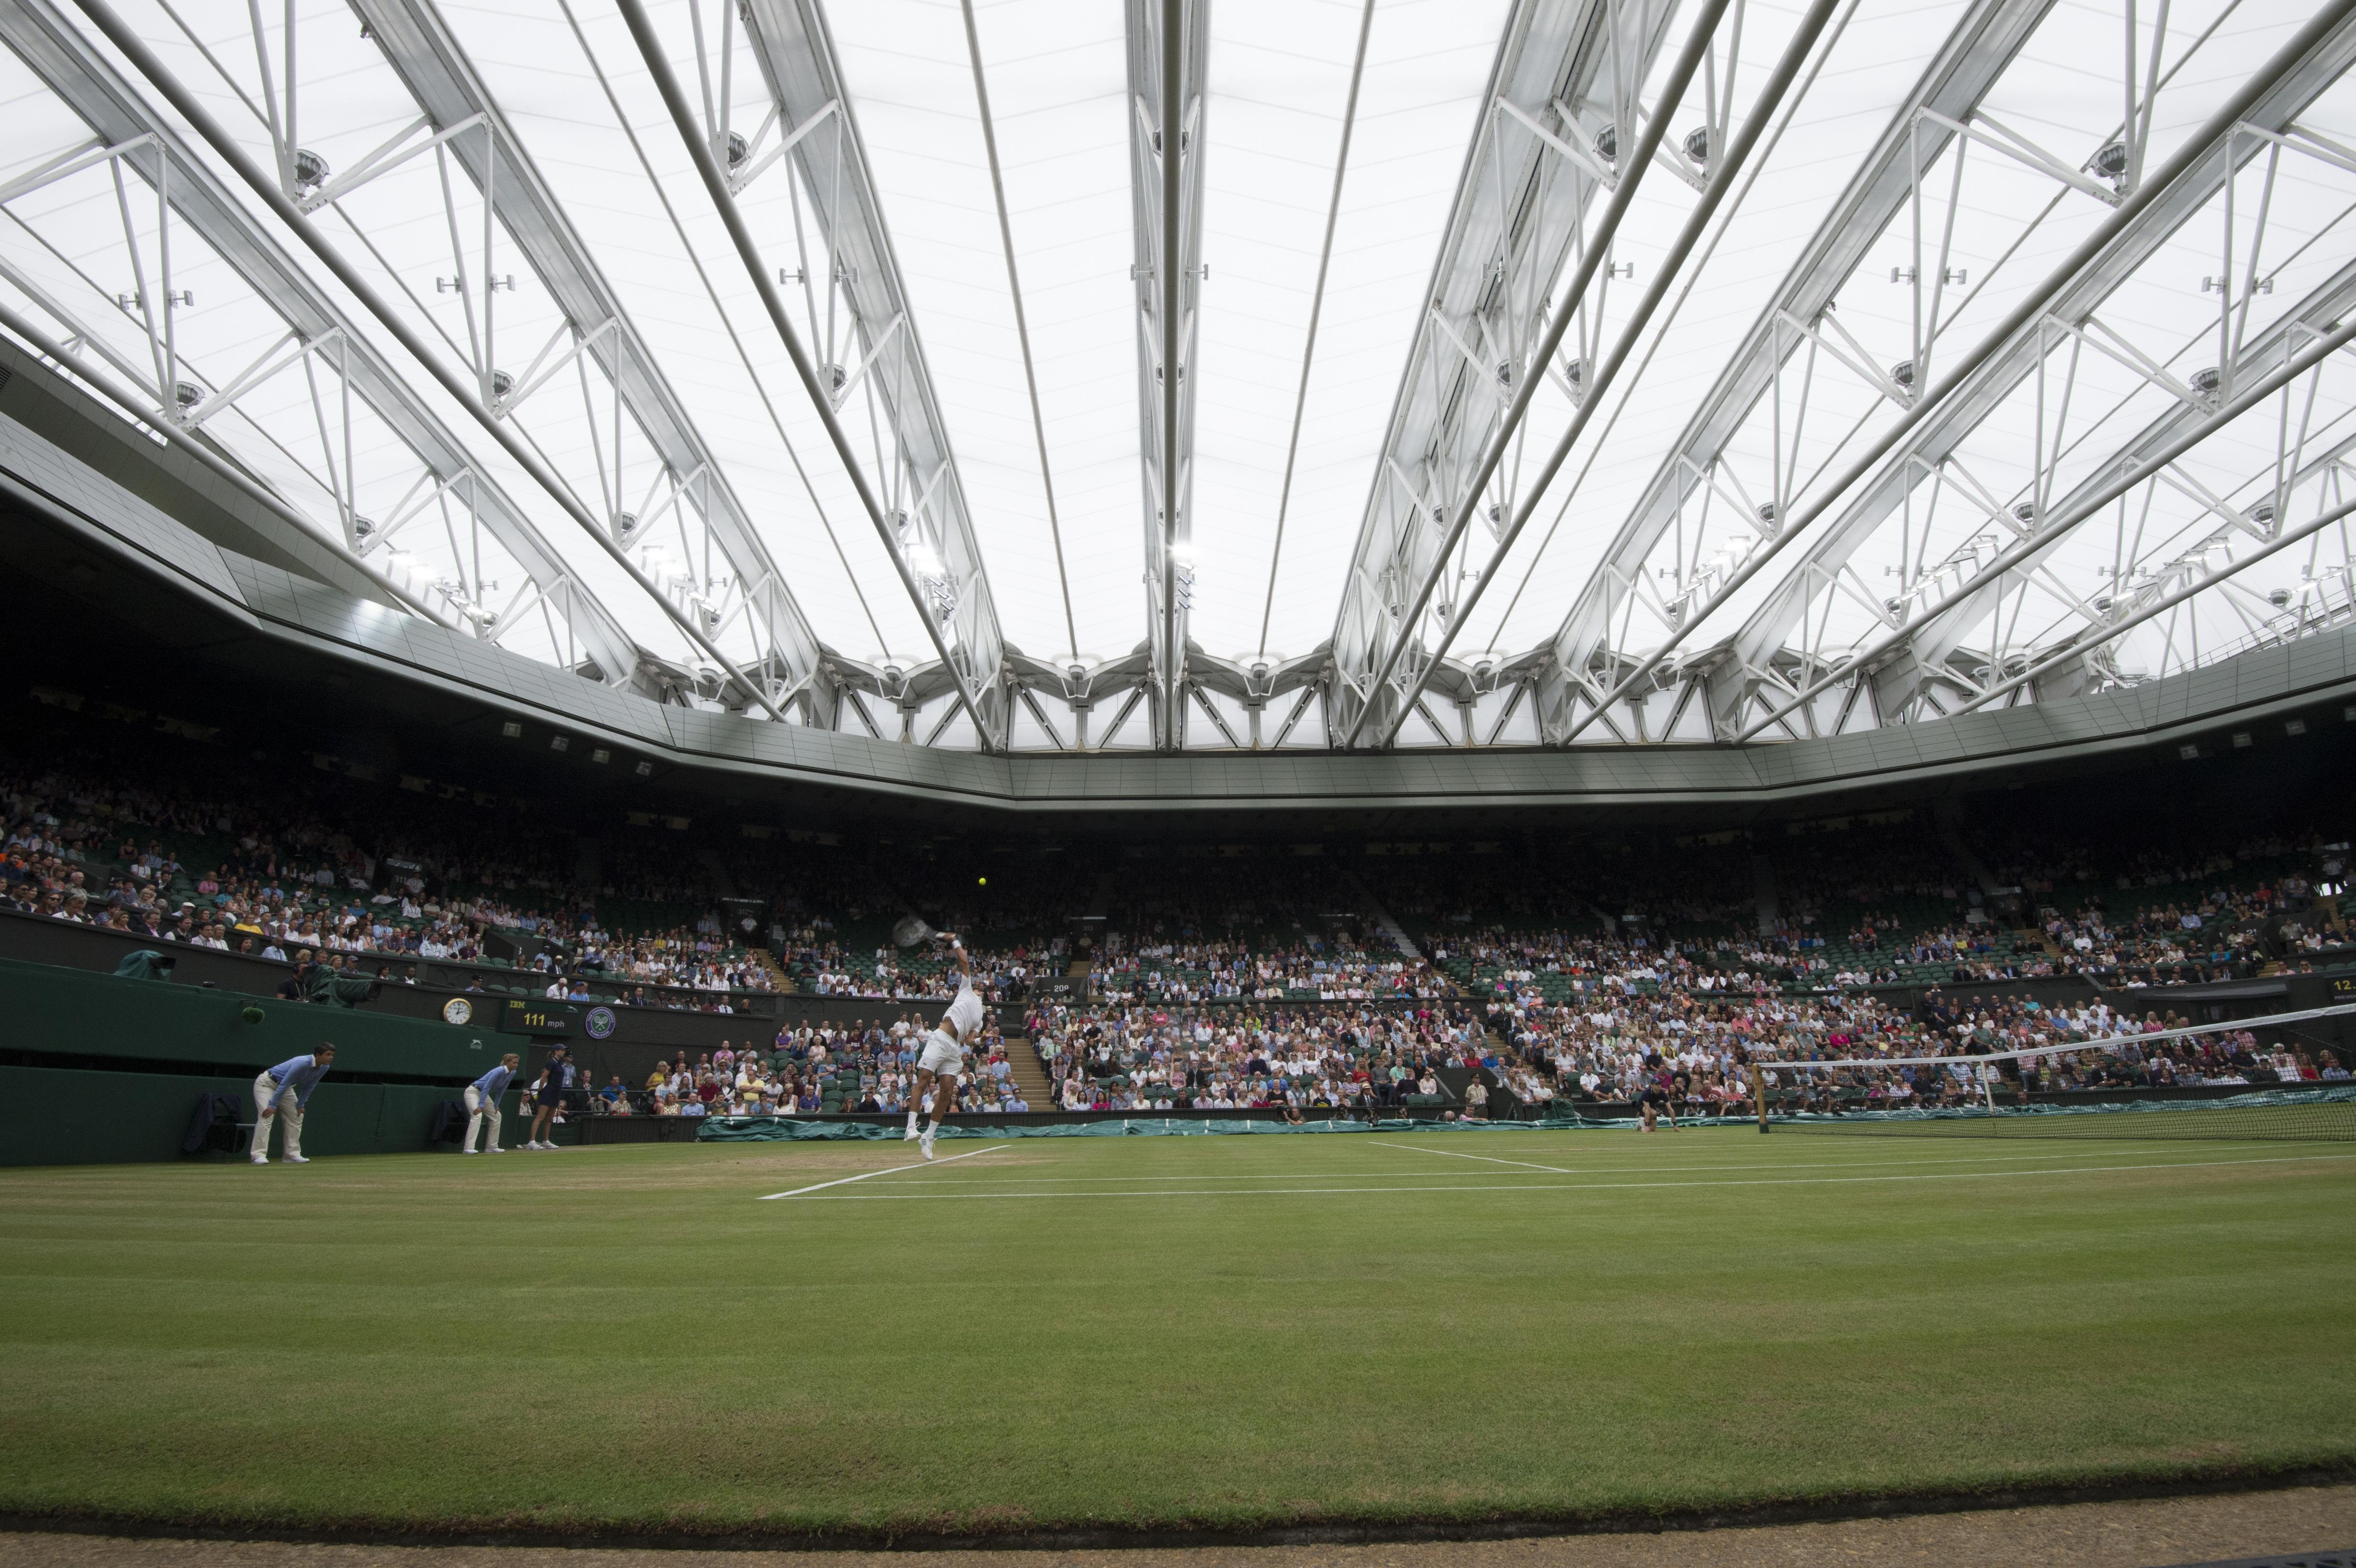 Wimbledon will remain on BBC as its listed event status requires to be free-to-air